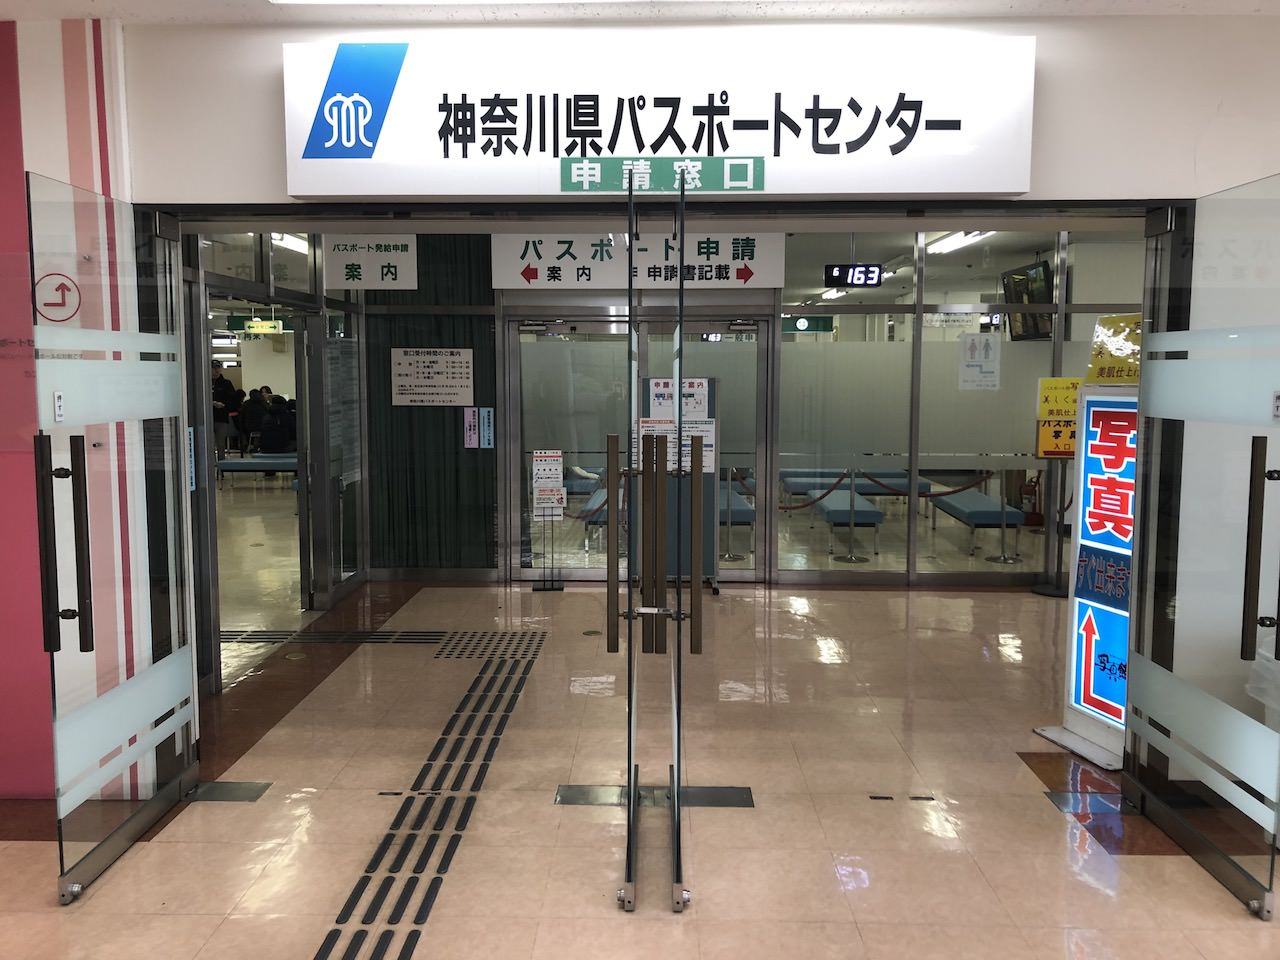 Kanagawa passport center